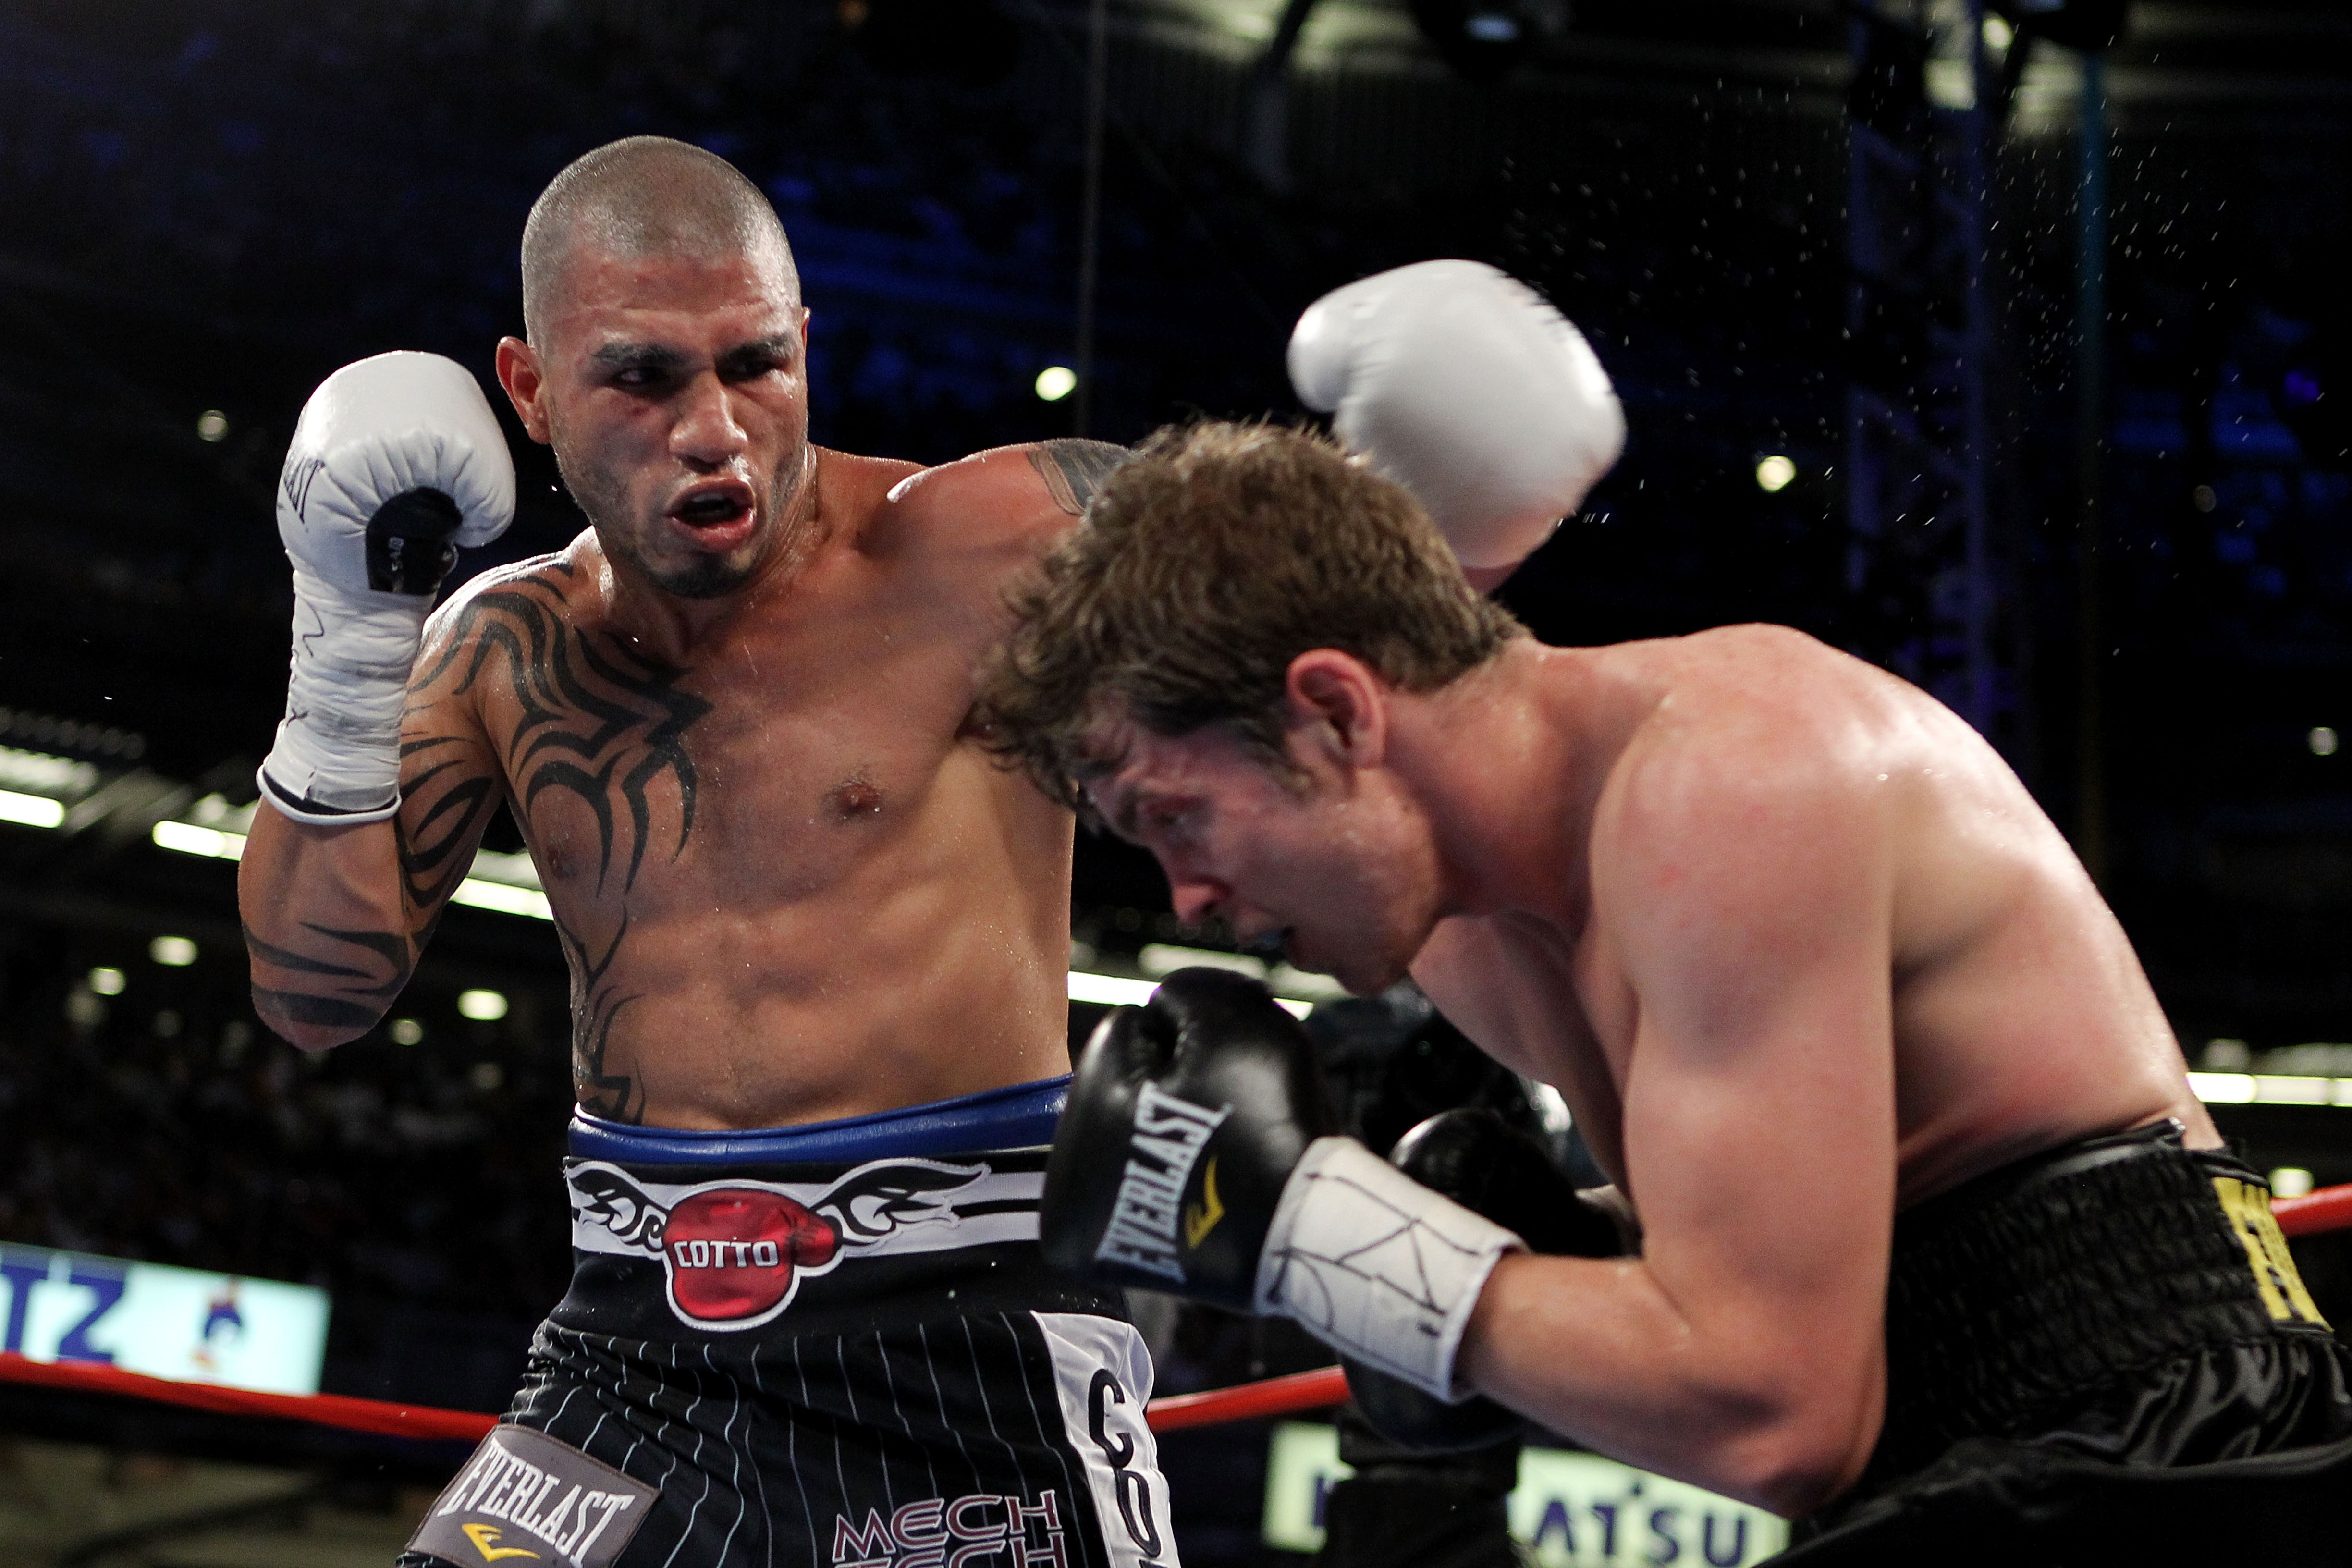 NEW YORK - JUNE 05:  (L-R) Miguel Cotto of Puerto Rico throws a left to the face of Yuri Foreman during the WBA world super welterweight title fight on June 5, 2010 at Yankee Stadium in the Bronx borough of New York City.  (Photo by Al Bello/Getty Images)